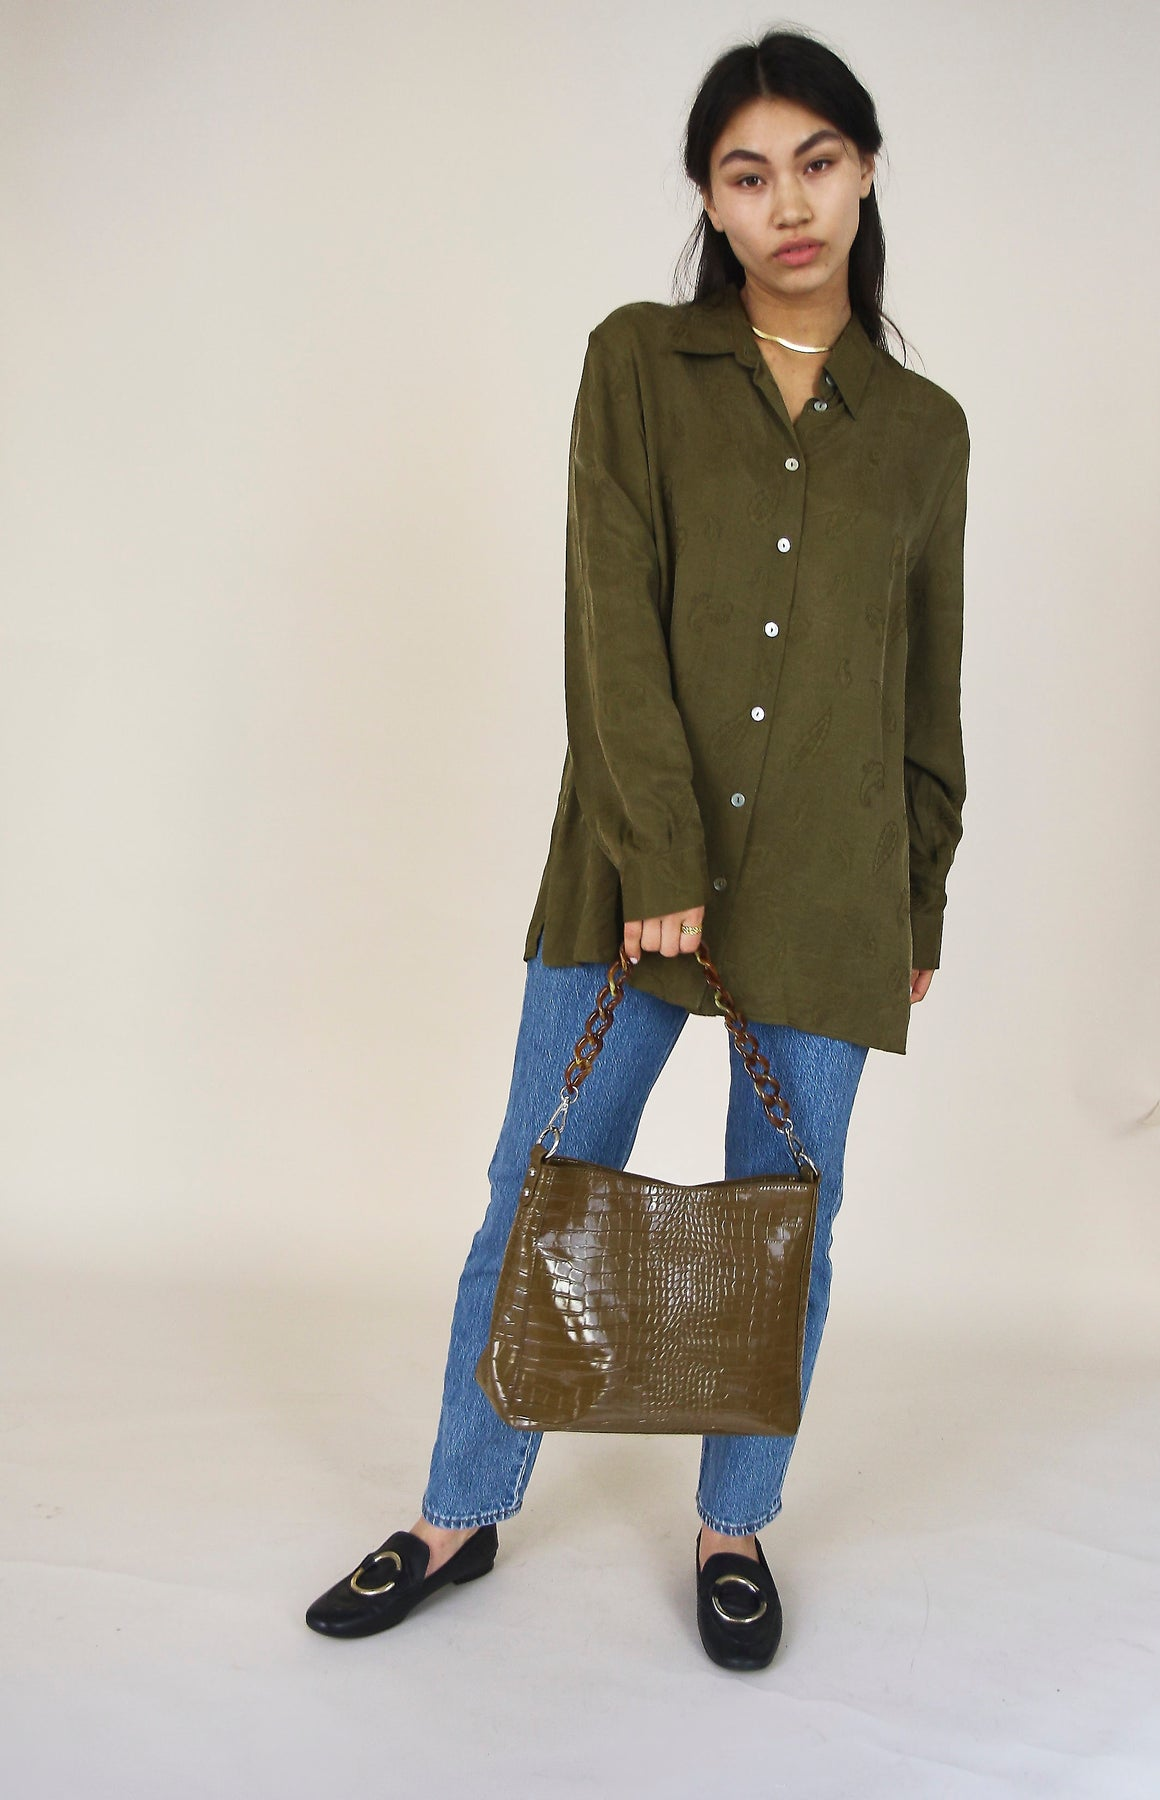 Amble Croco Olive Handbag